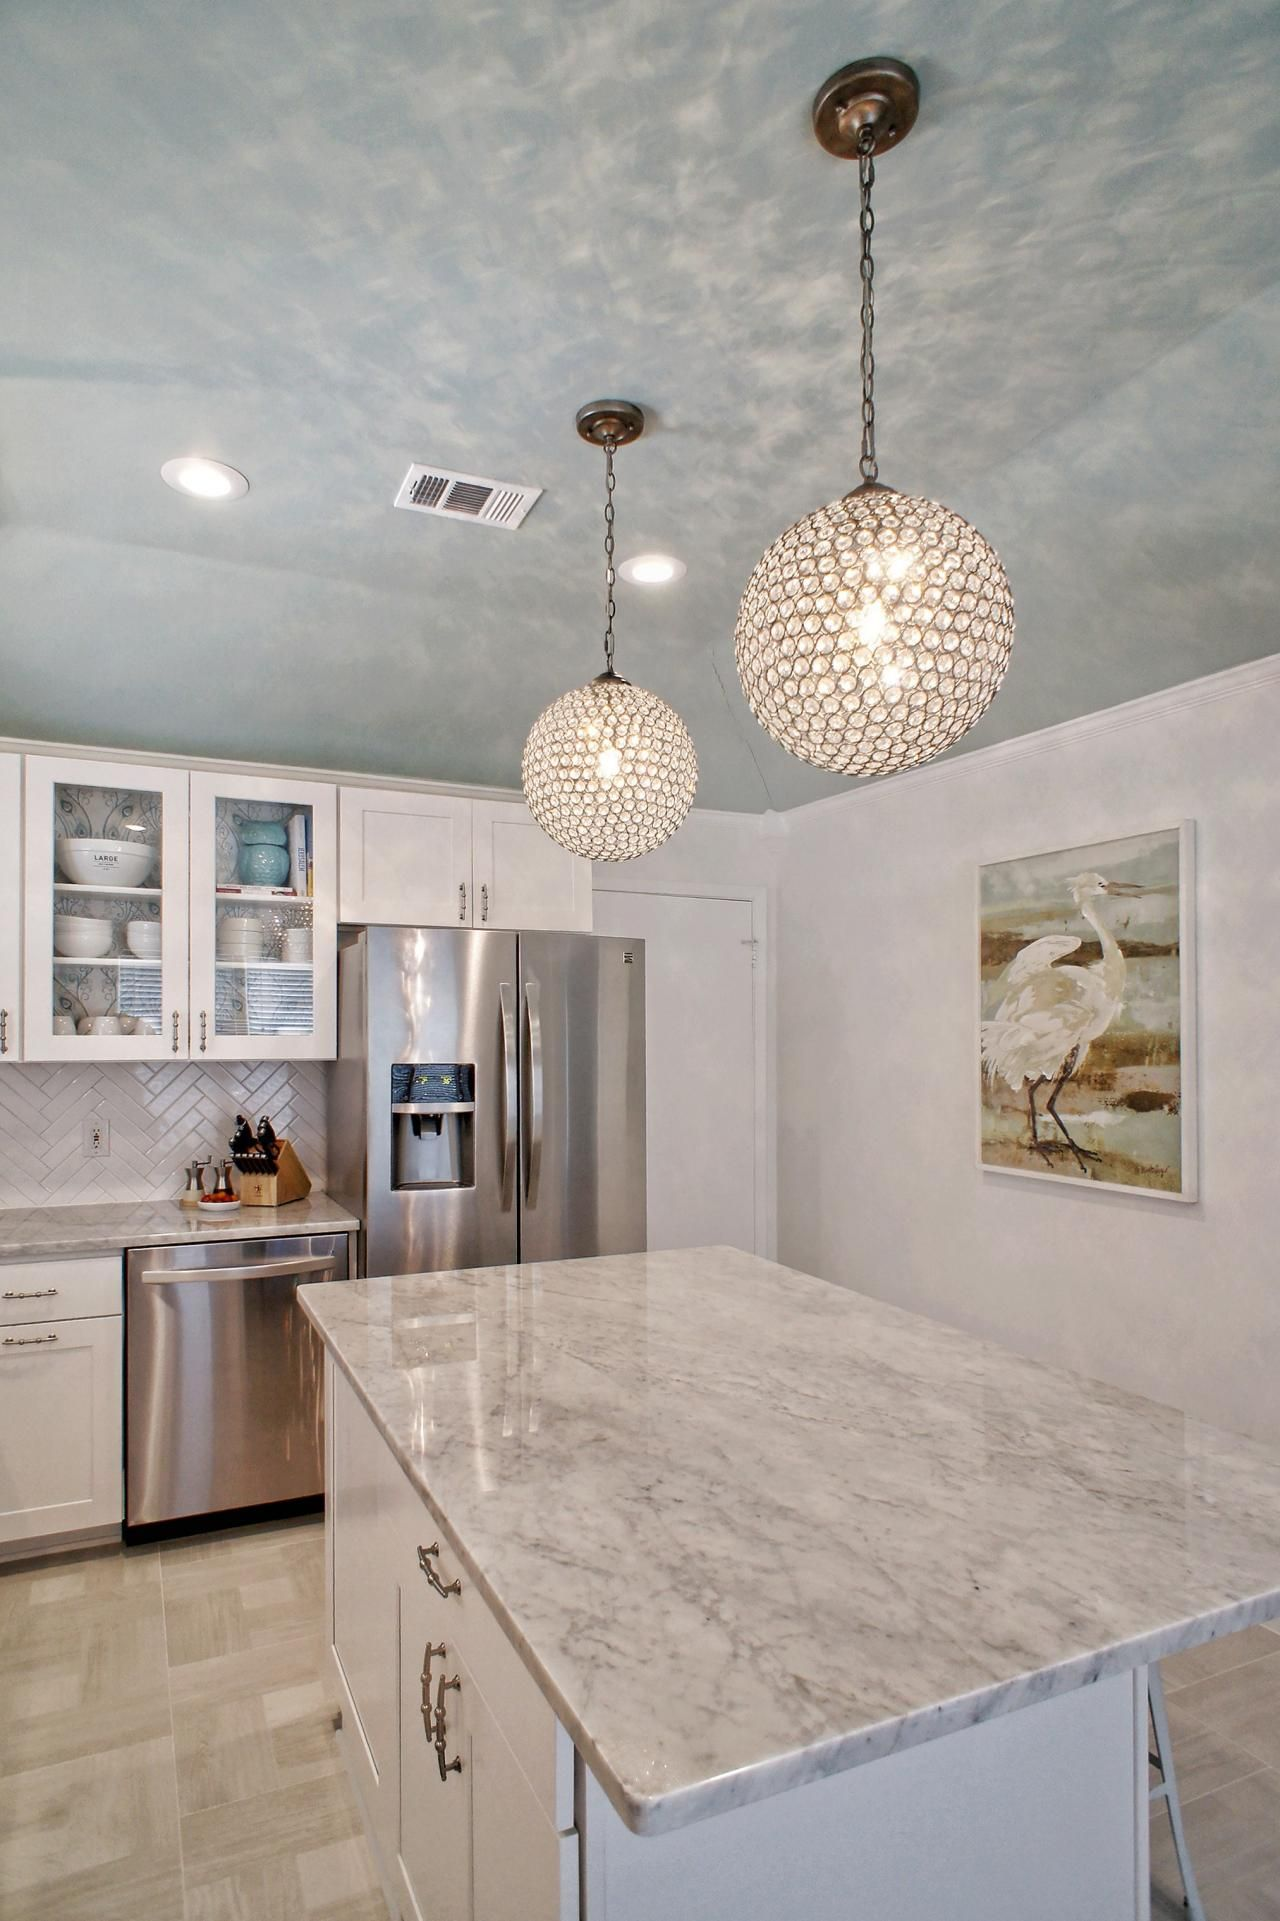 Undefined dream kitchen pinterest pendant lamps hgtv and